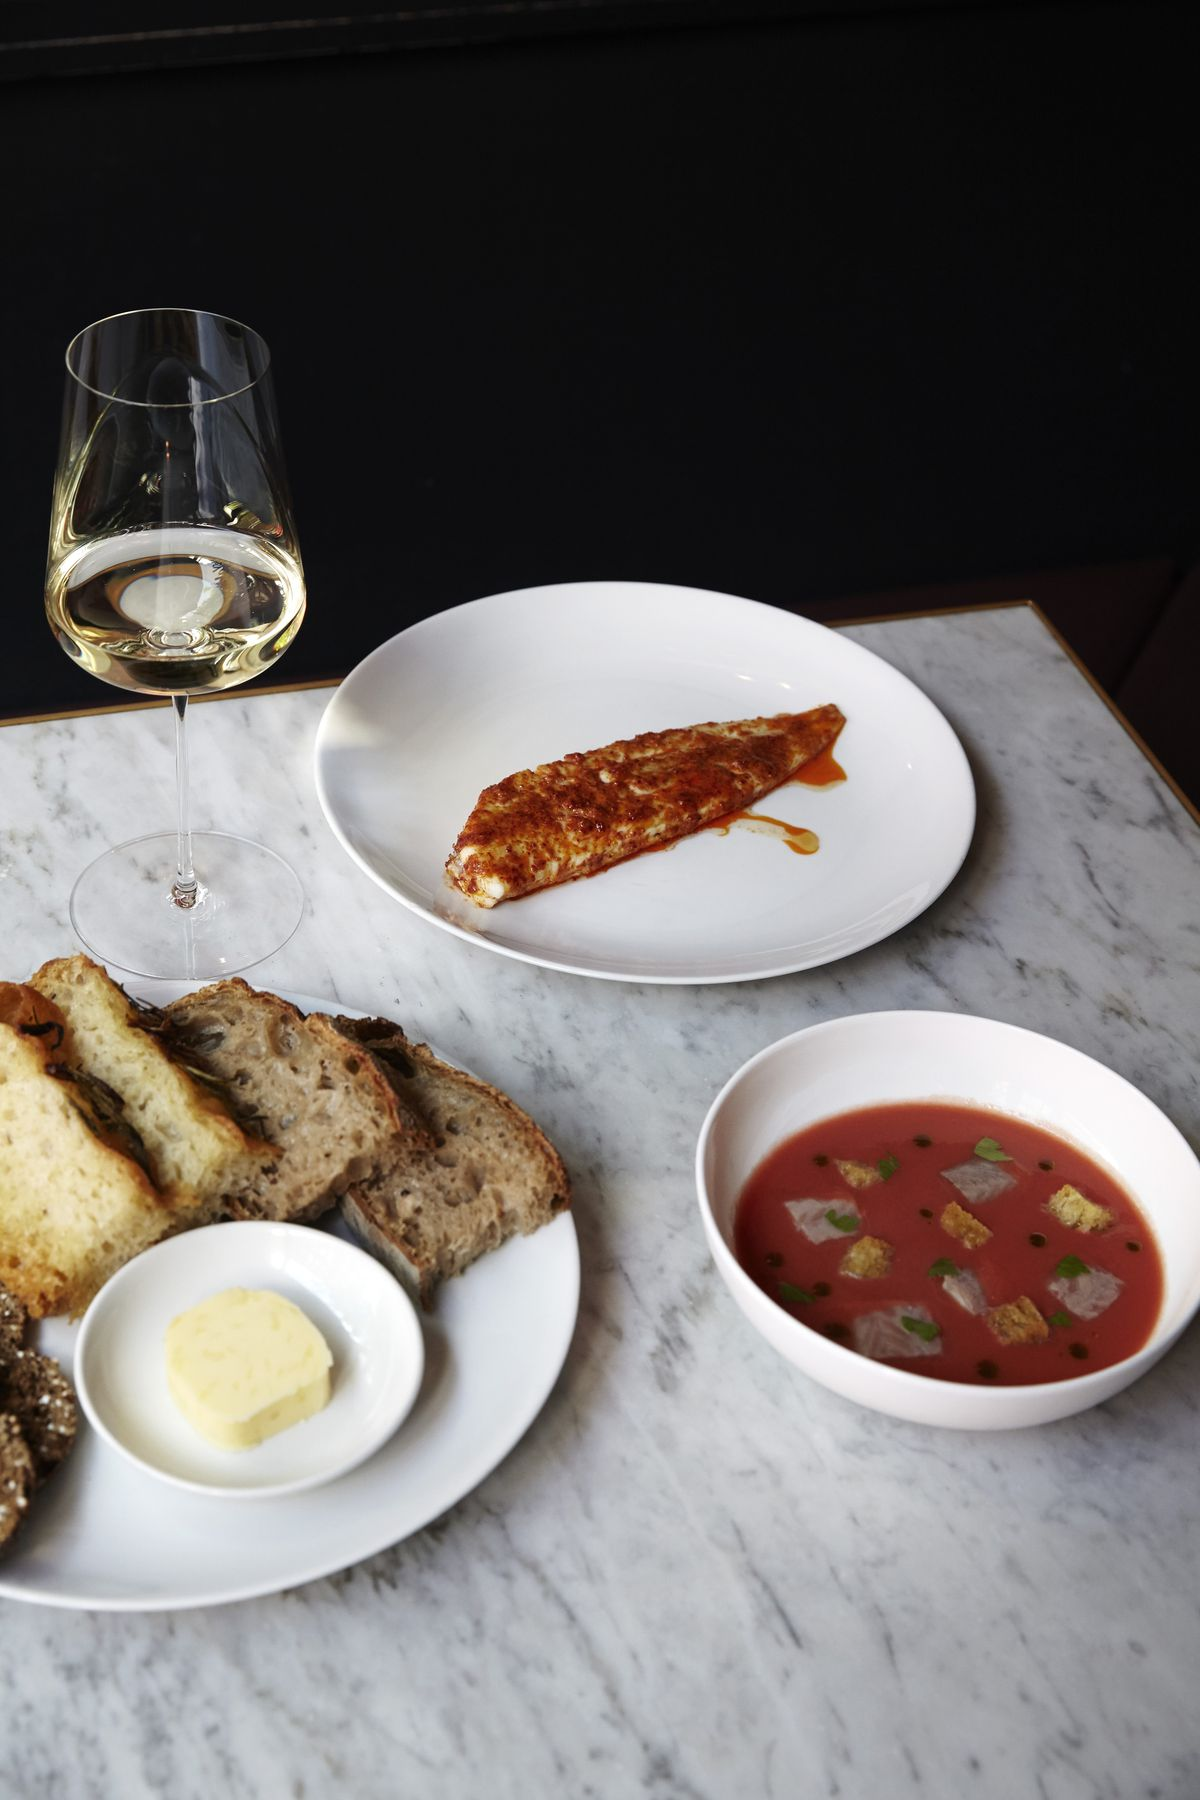 Noble Rot restaurant is opening a new wine bar in Soho on the site of the Gay Hussar